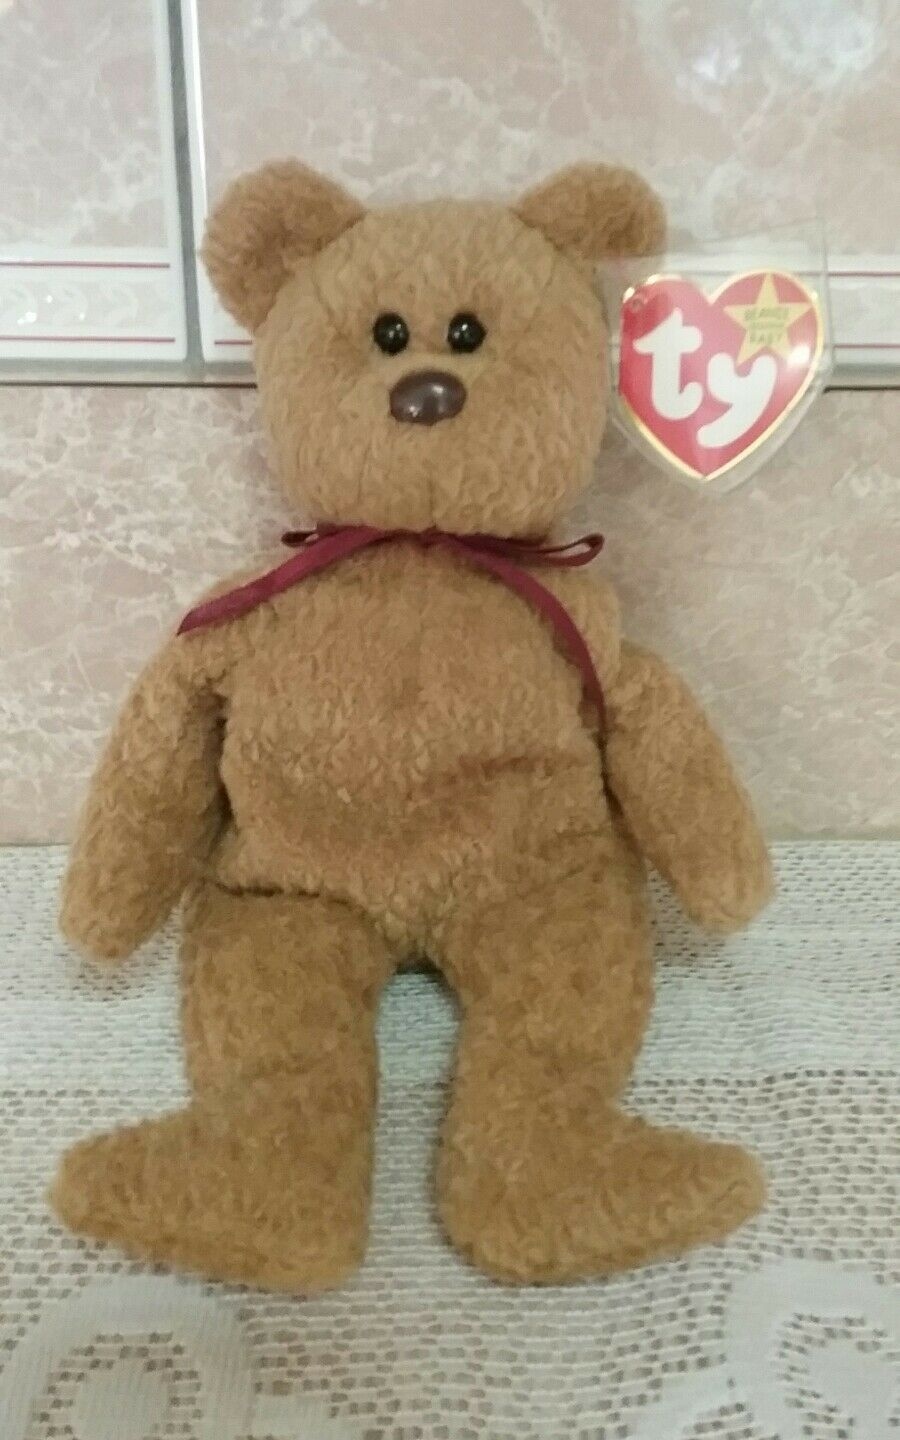 EXTREMELY RARE Ty Beanie Baby 'Curly' Retired Bear with MANY Errors  True Gem